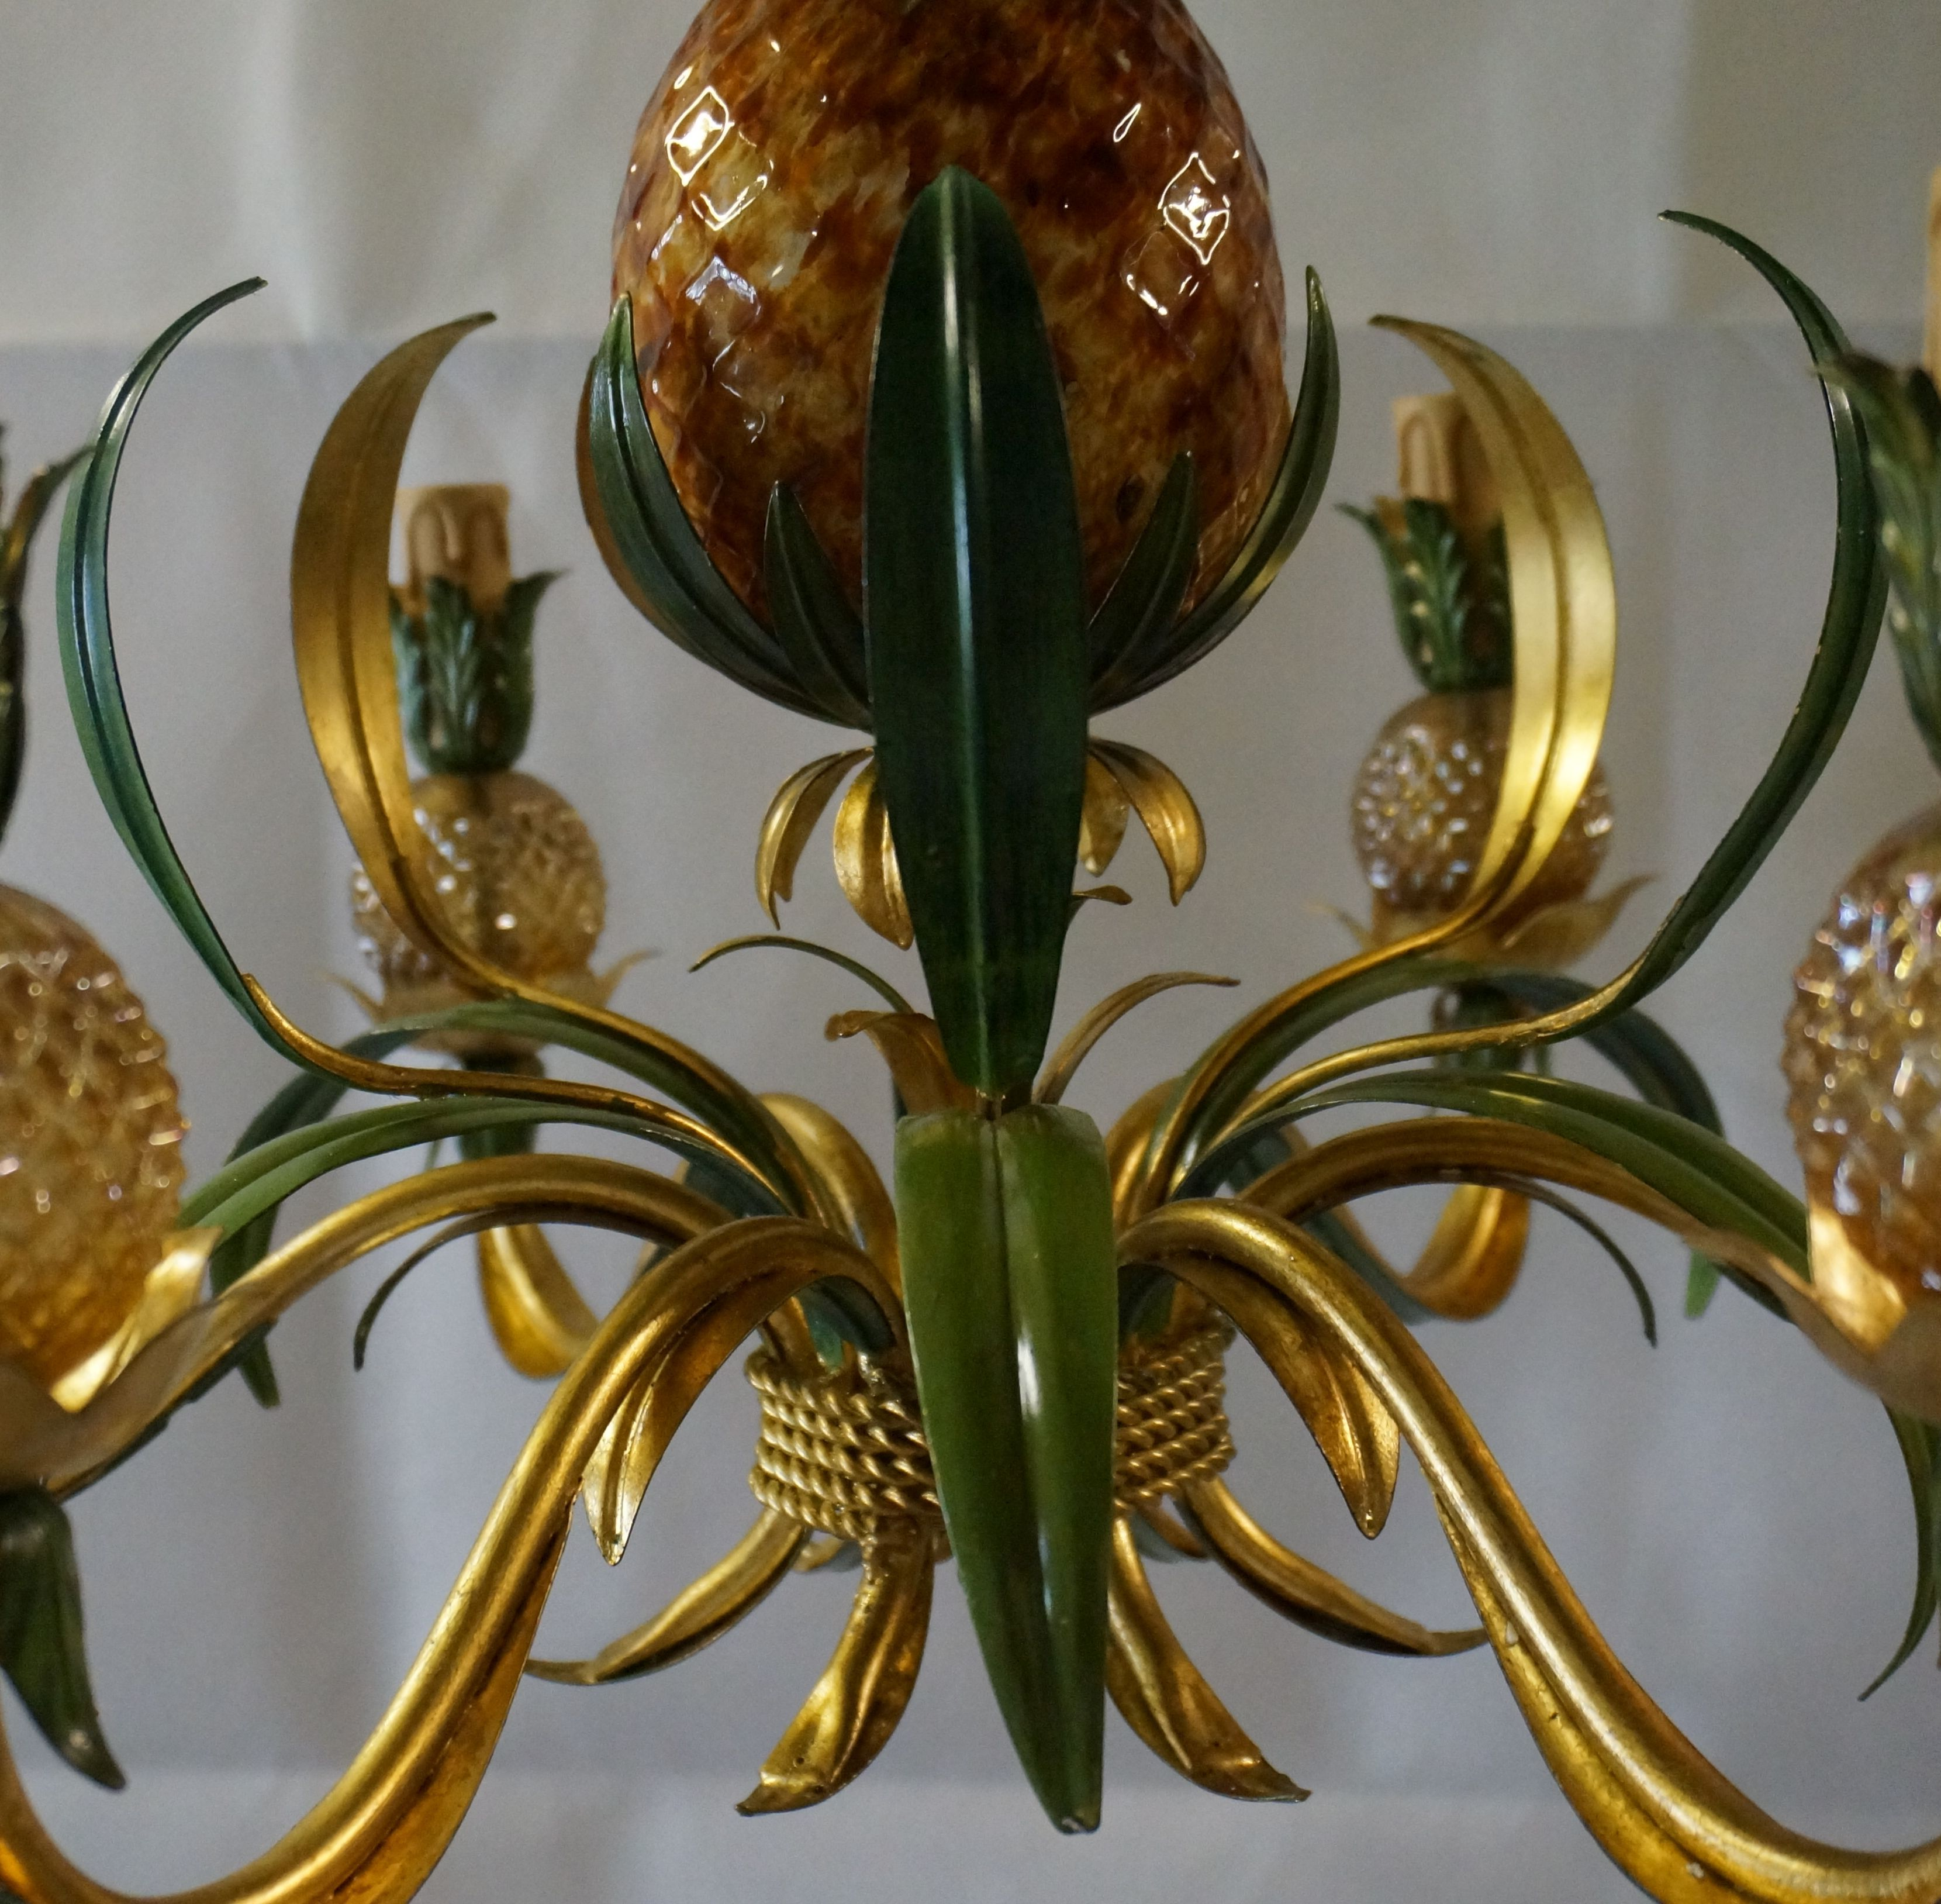 Murano glass pineapple chandelier This is just a small section of